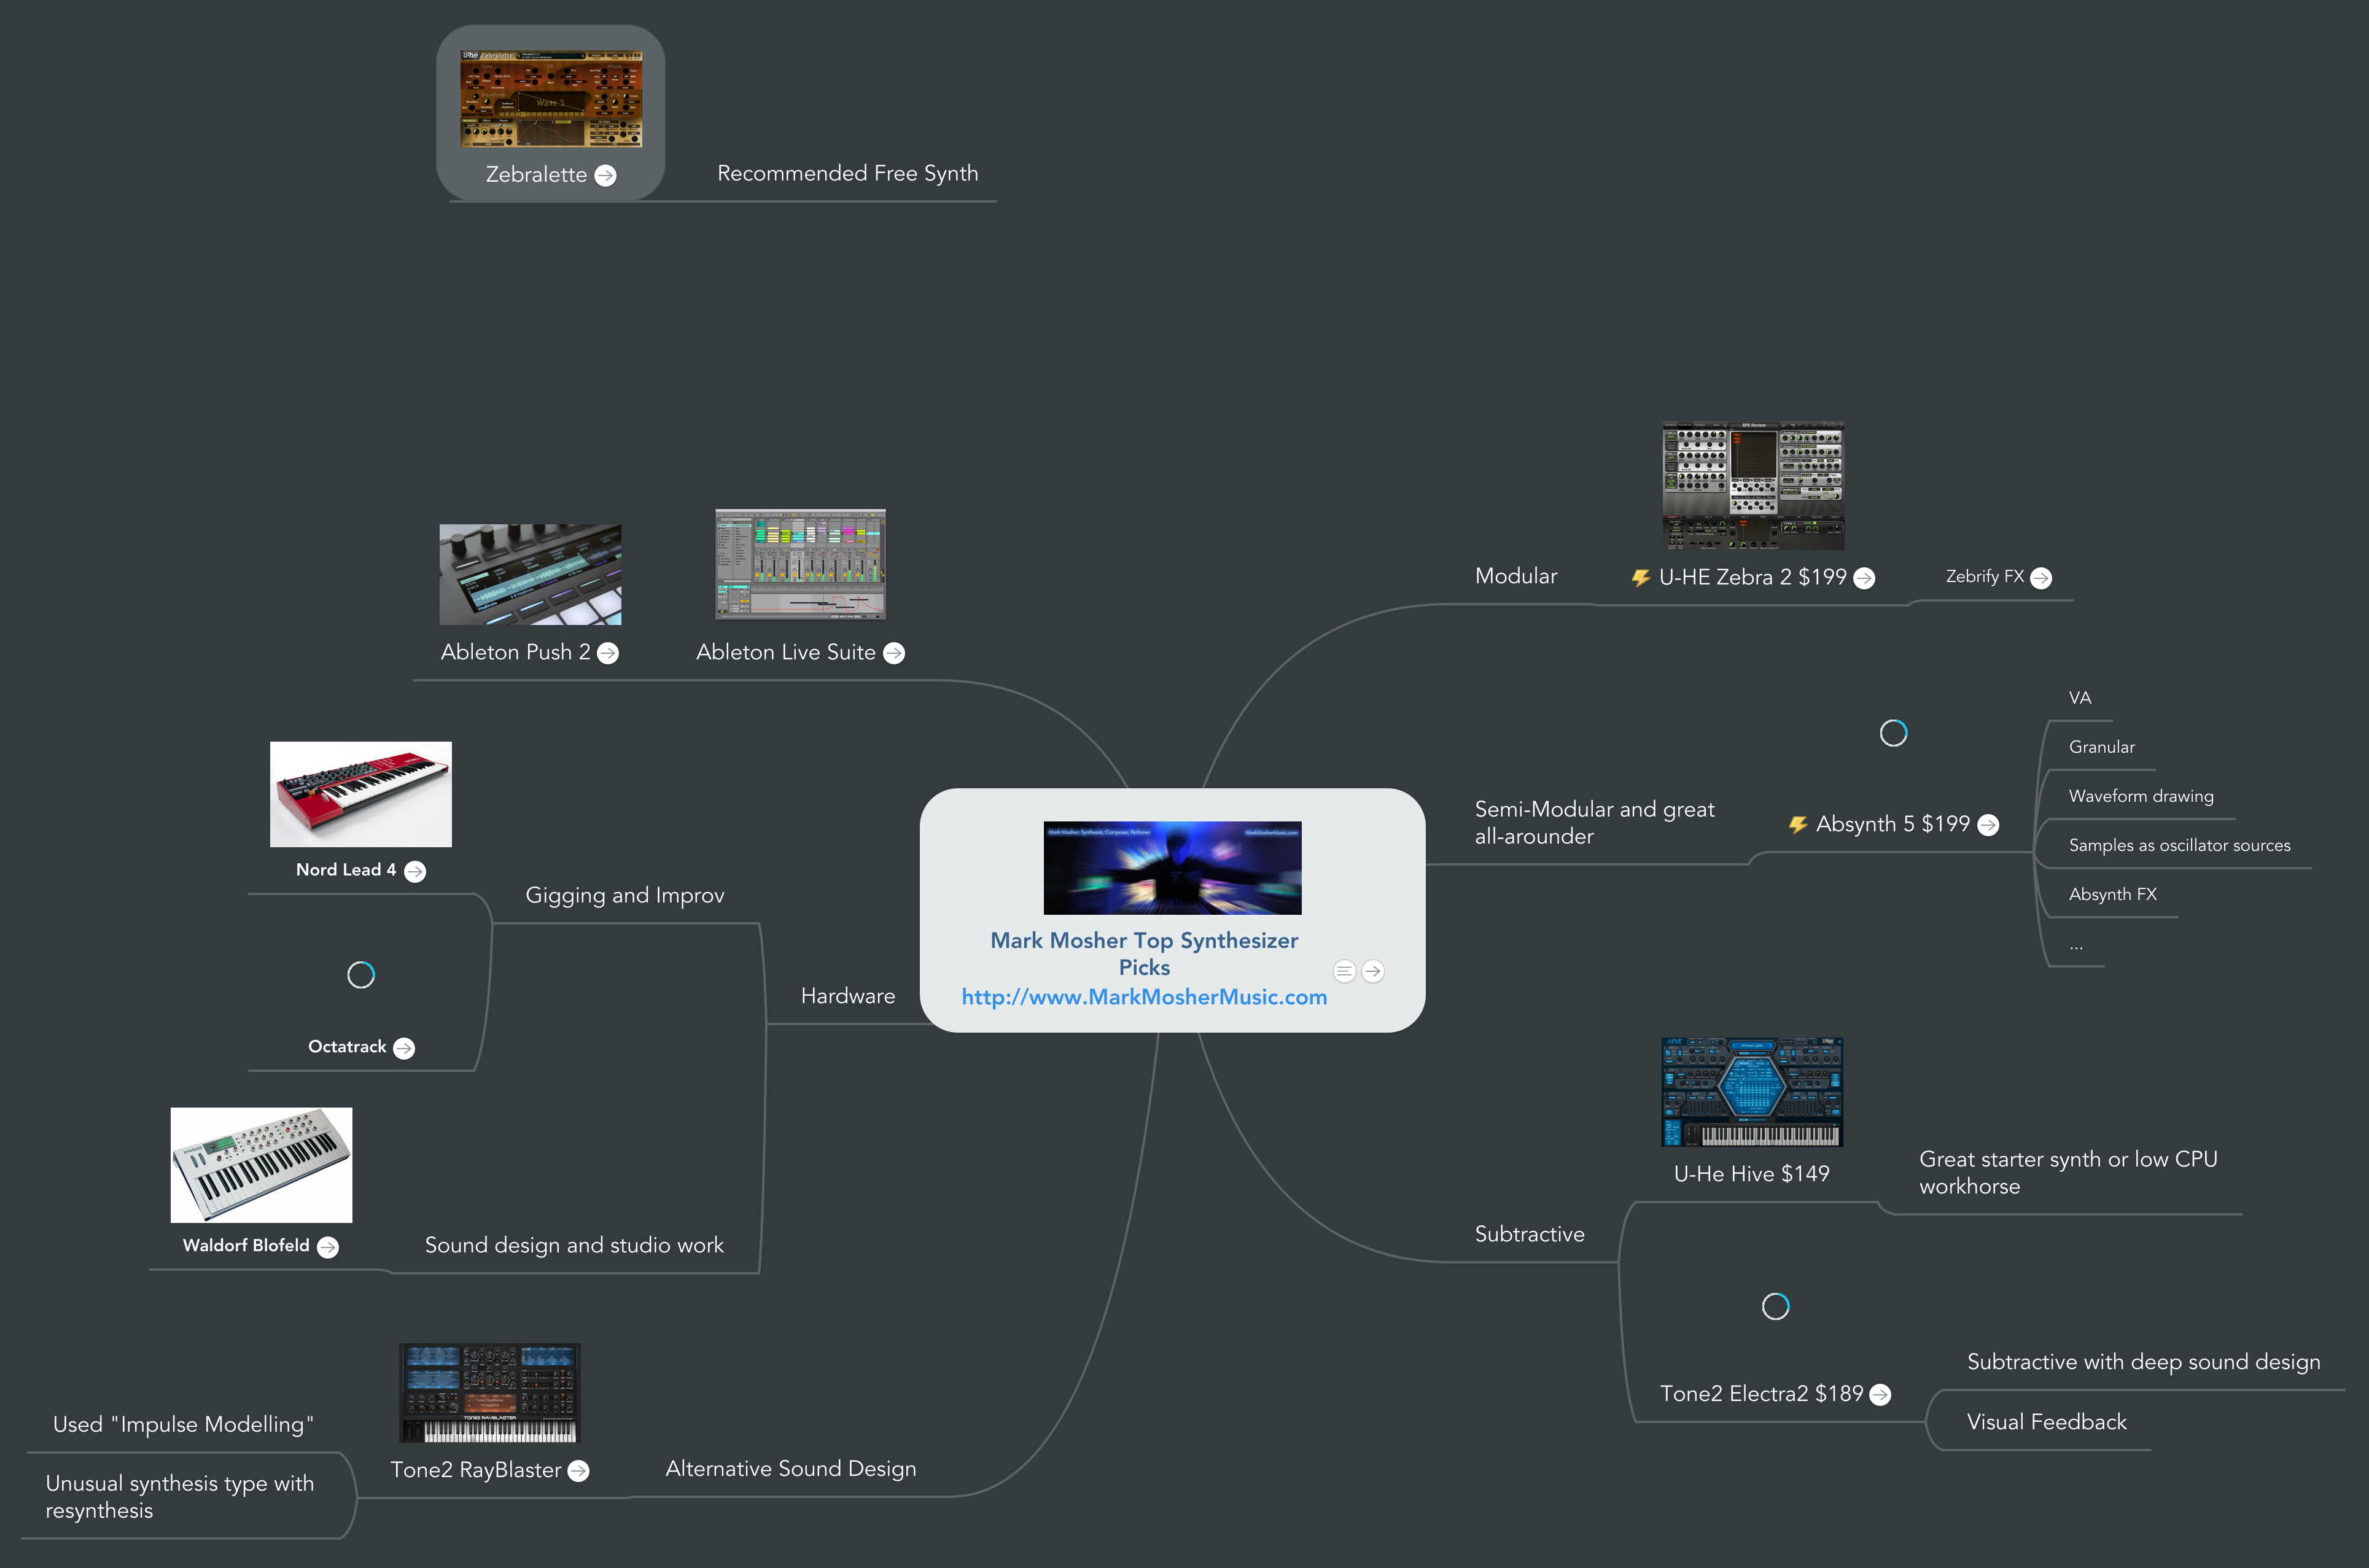 Mind Map: Mark Mosher Top Virtual Synthesizer Picks MarkMosherMusic.com